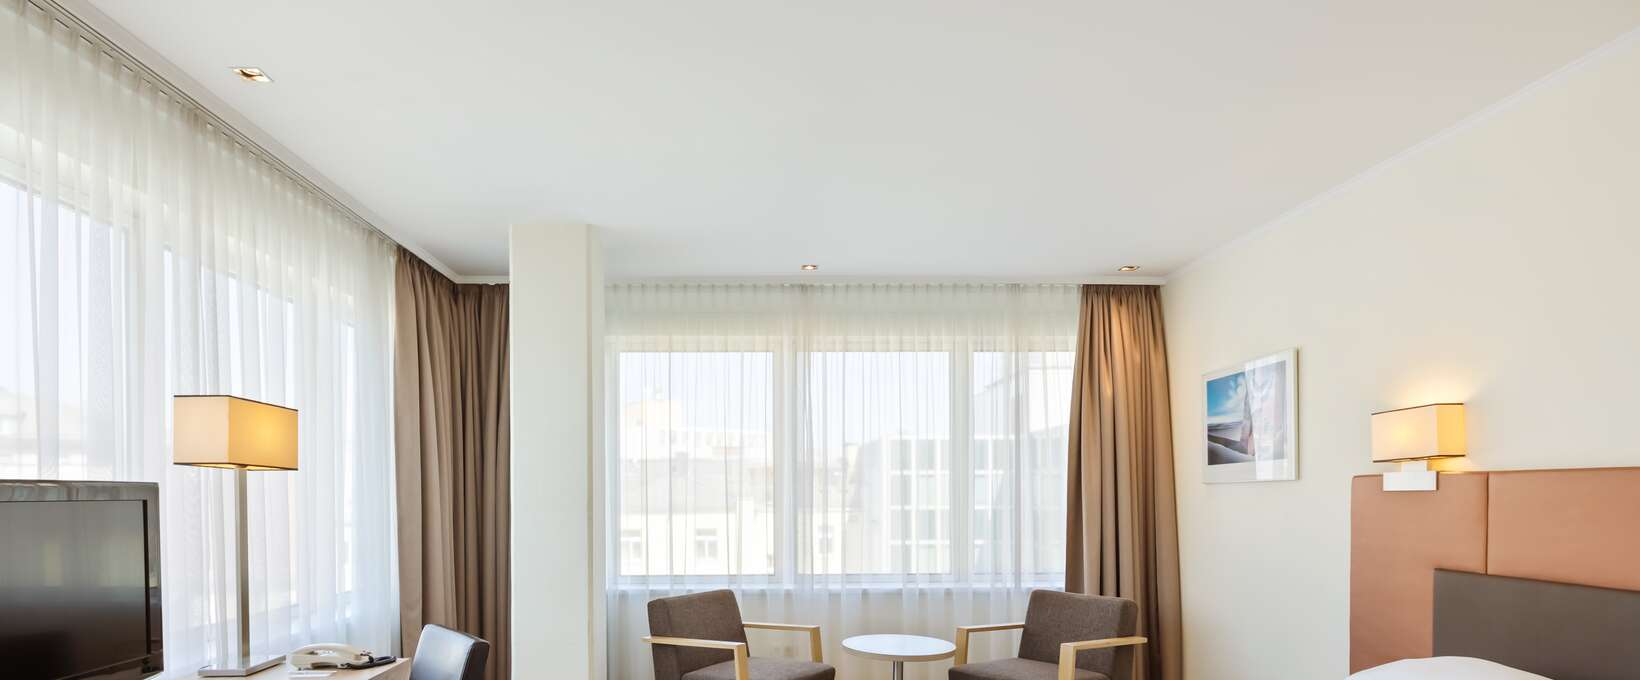 Executive Deluxe Room with kingsize bed, seating area and TV | Hotel Schillerpark in Linz